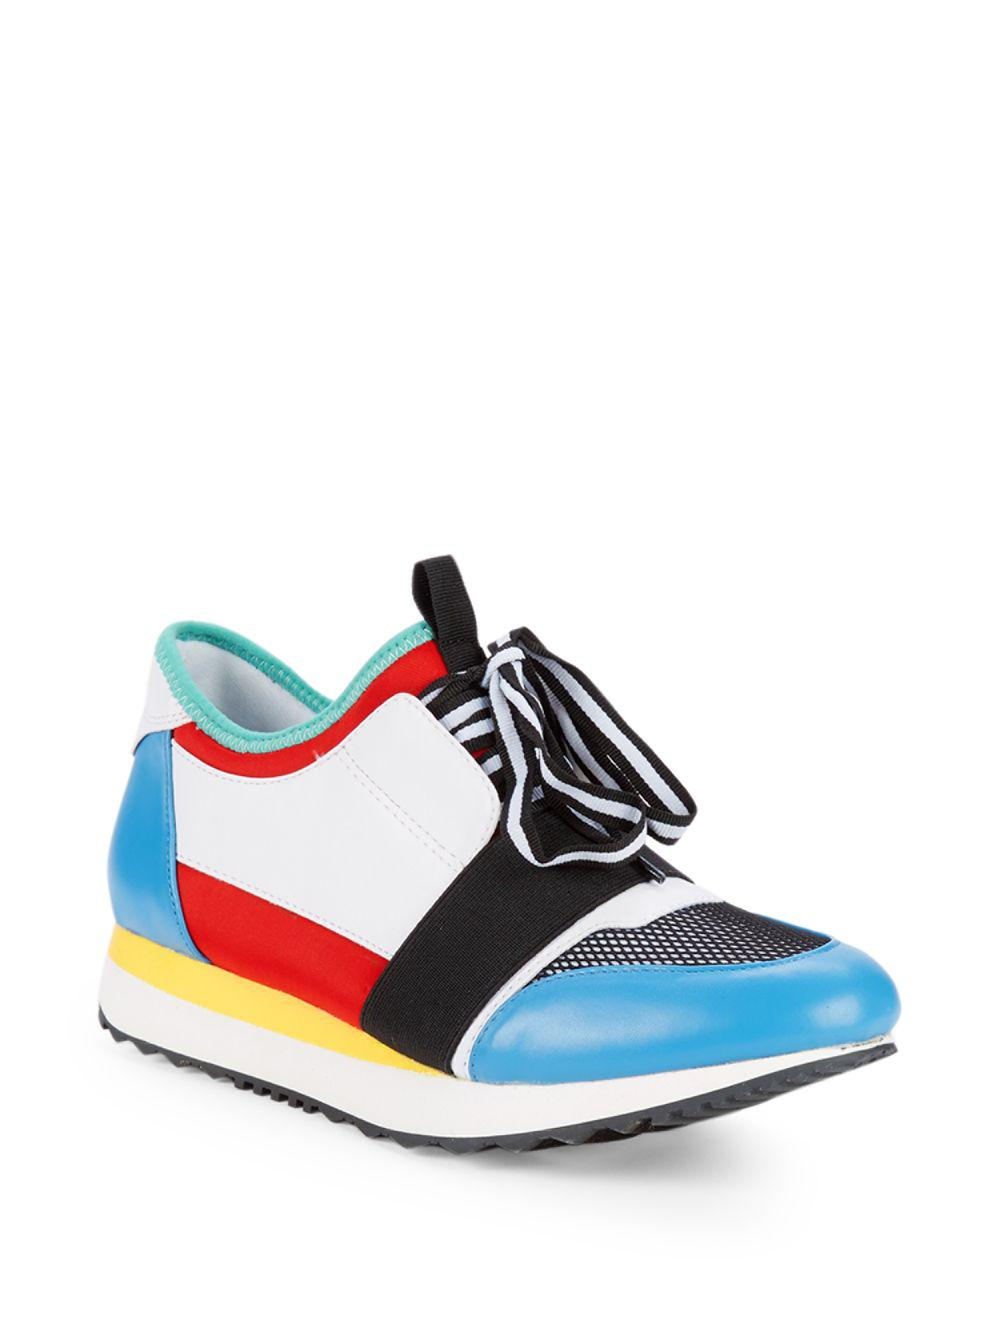 a388e57b90d Steve Madden Kacie Colorblock Sneakers in Blue - Lyst